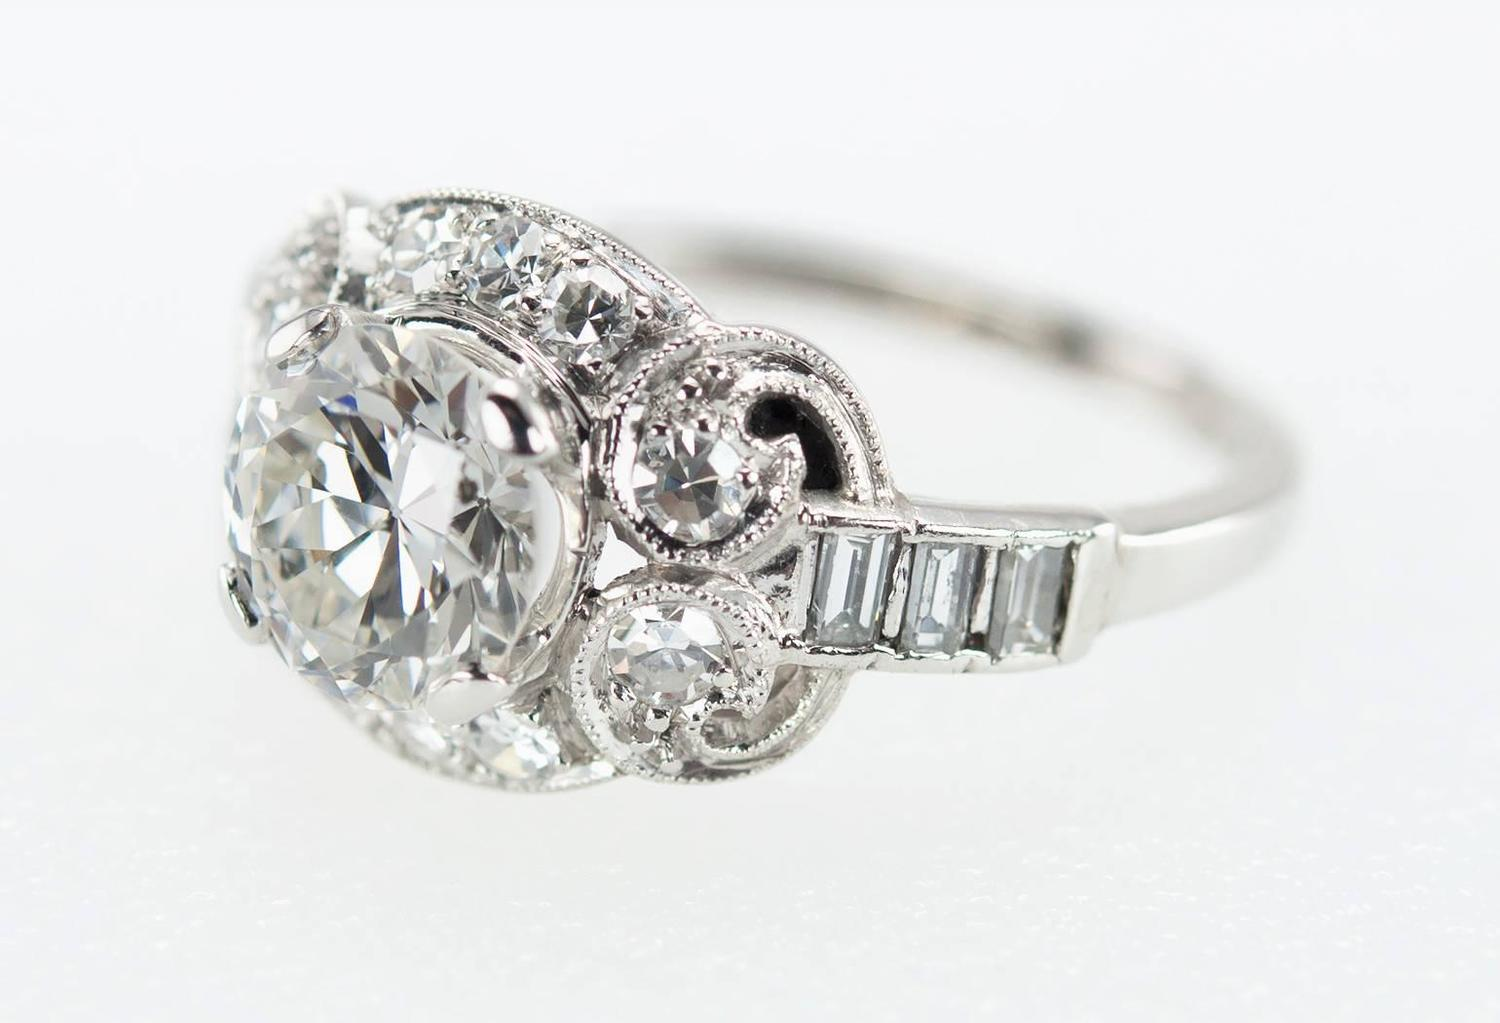 1930s carat diamond platinum engagement ring for sale for 26 carat diamond ring